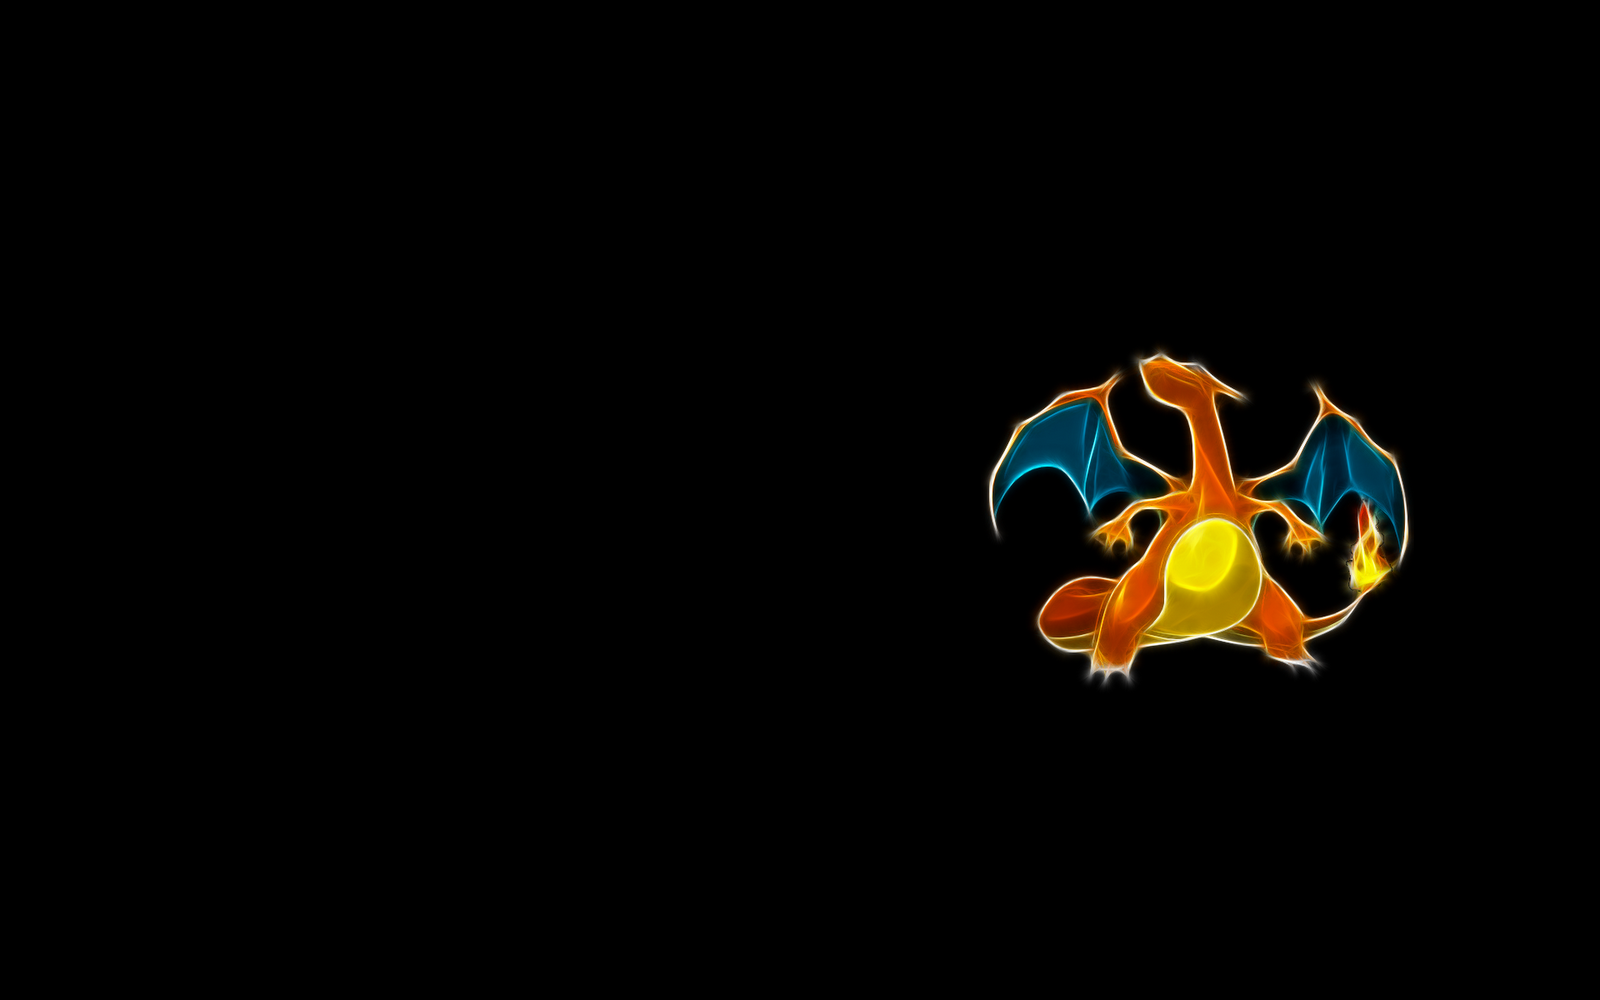 Cool Stuff Hurr: Pokemon wallpapers!